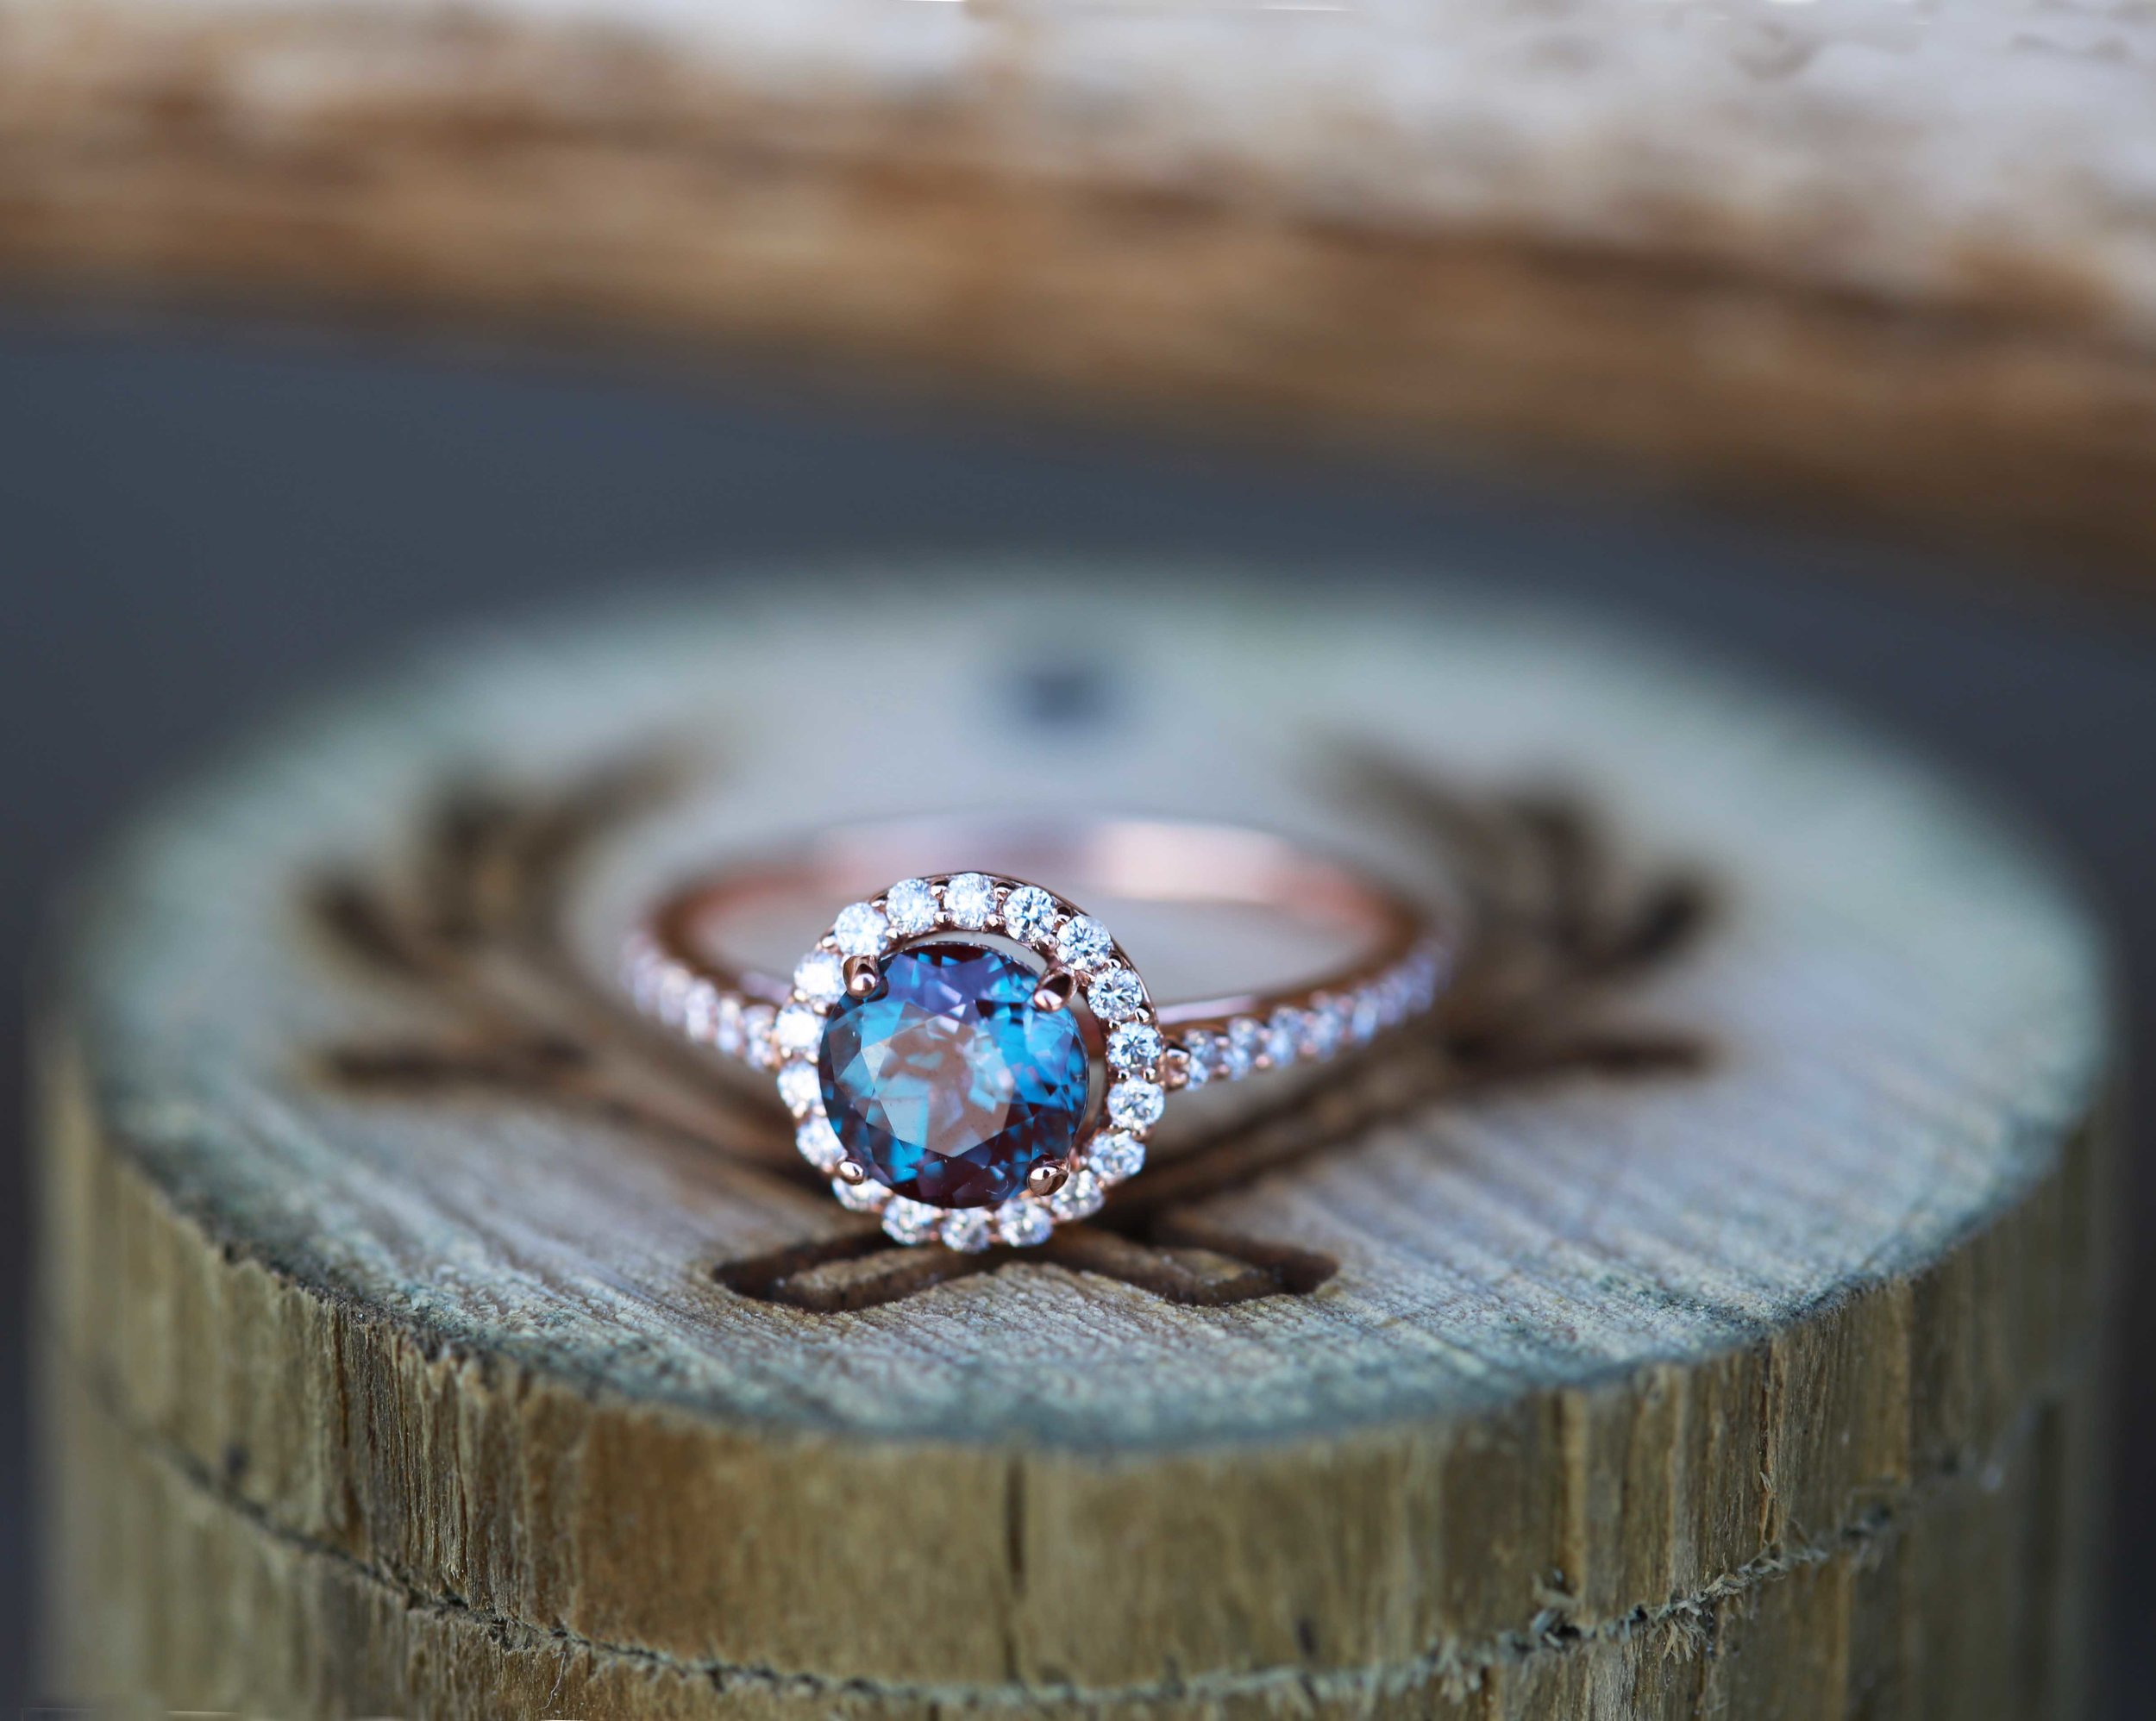 14K ROSE GOLD ENGAGEMENT RING WITH 38ctw ALEXANDRITE AND